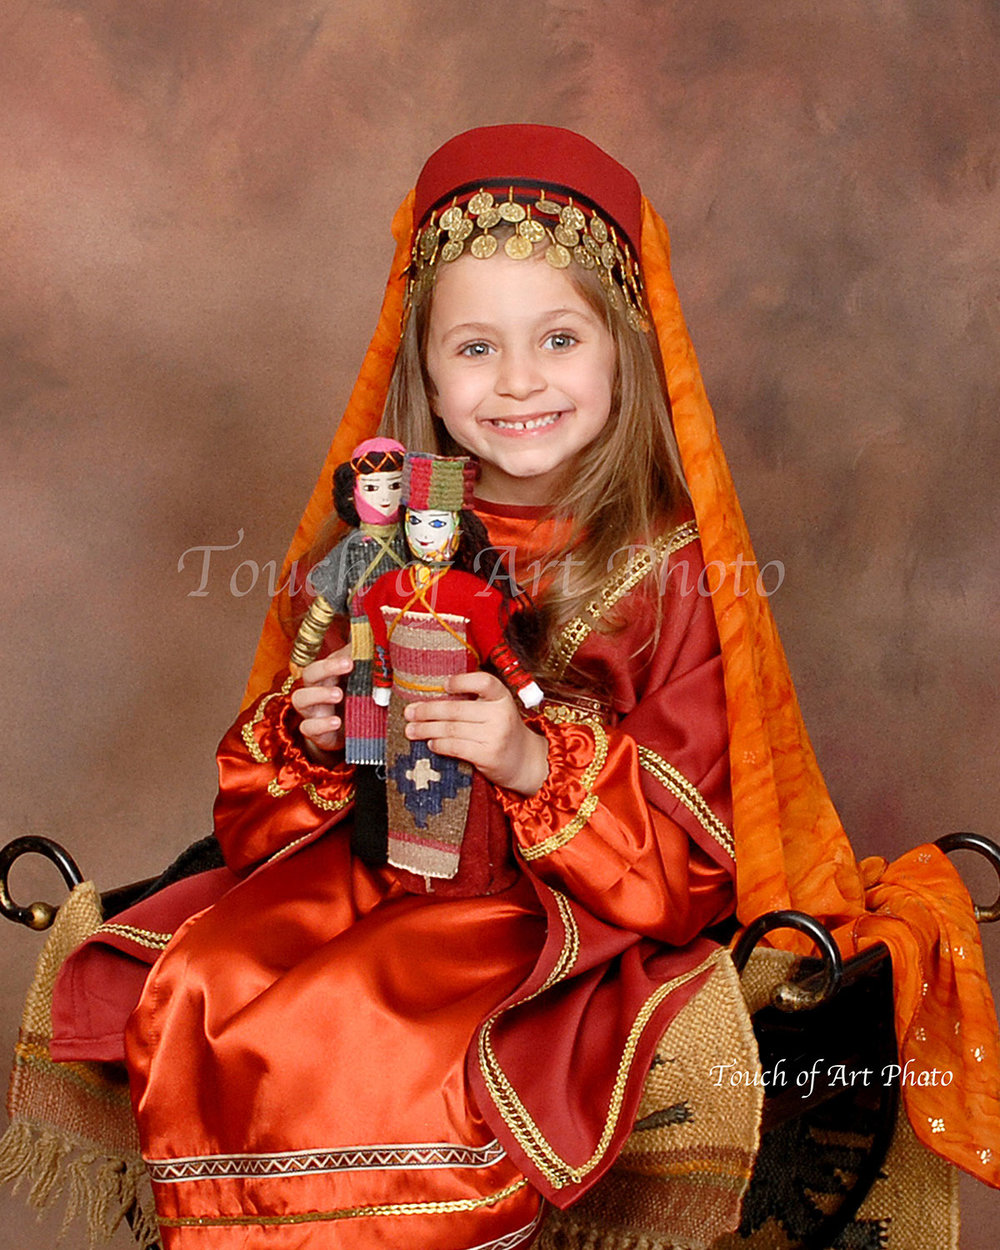 Heritage_Costume_Photography_003.jpg